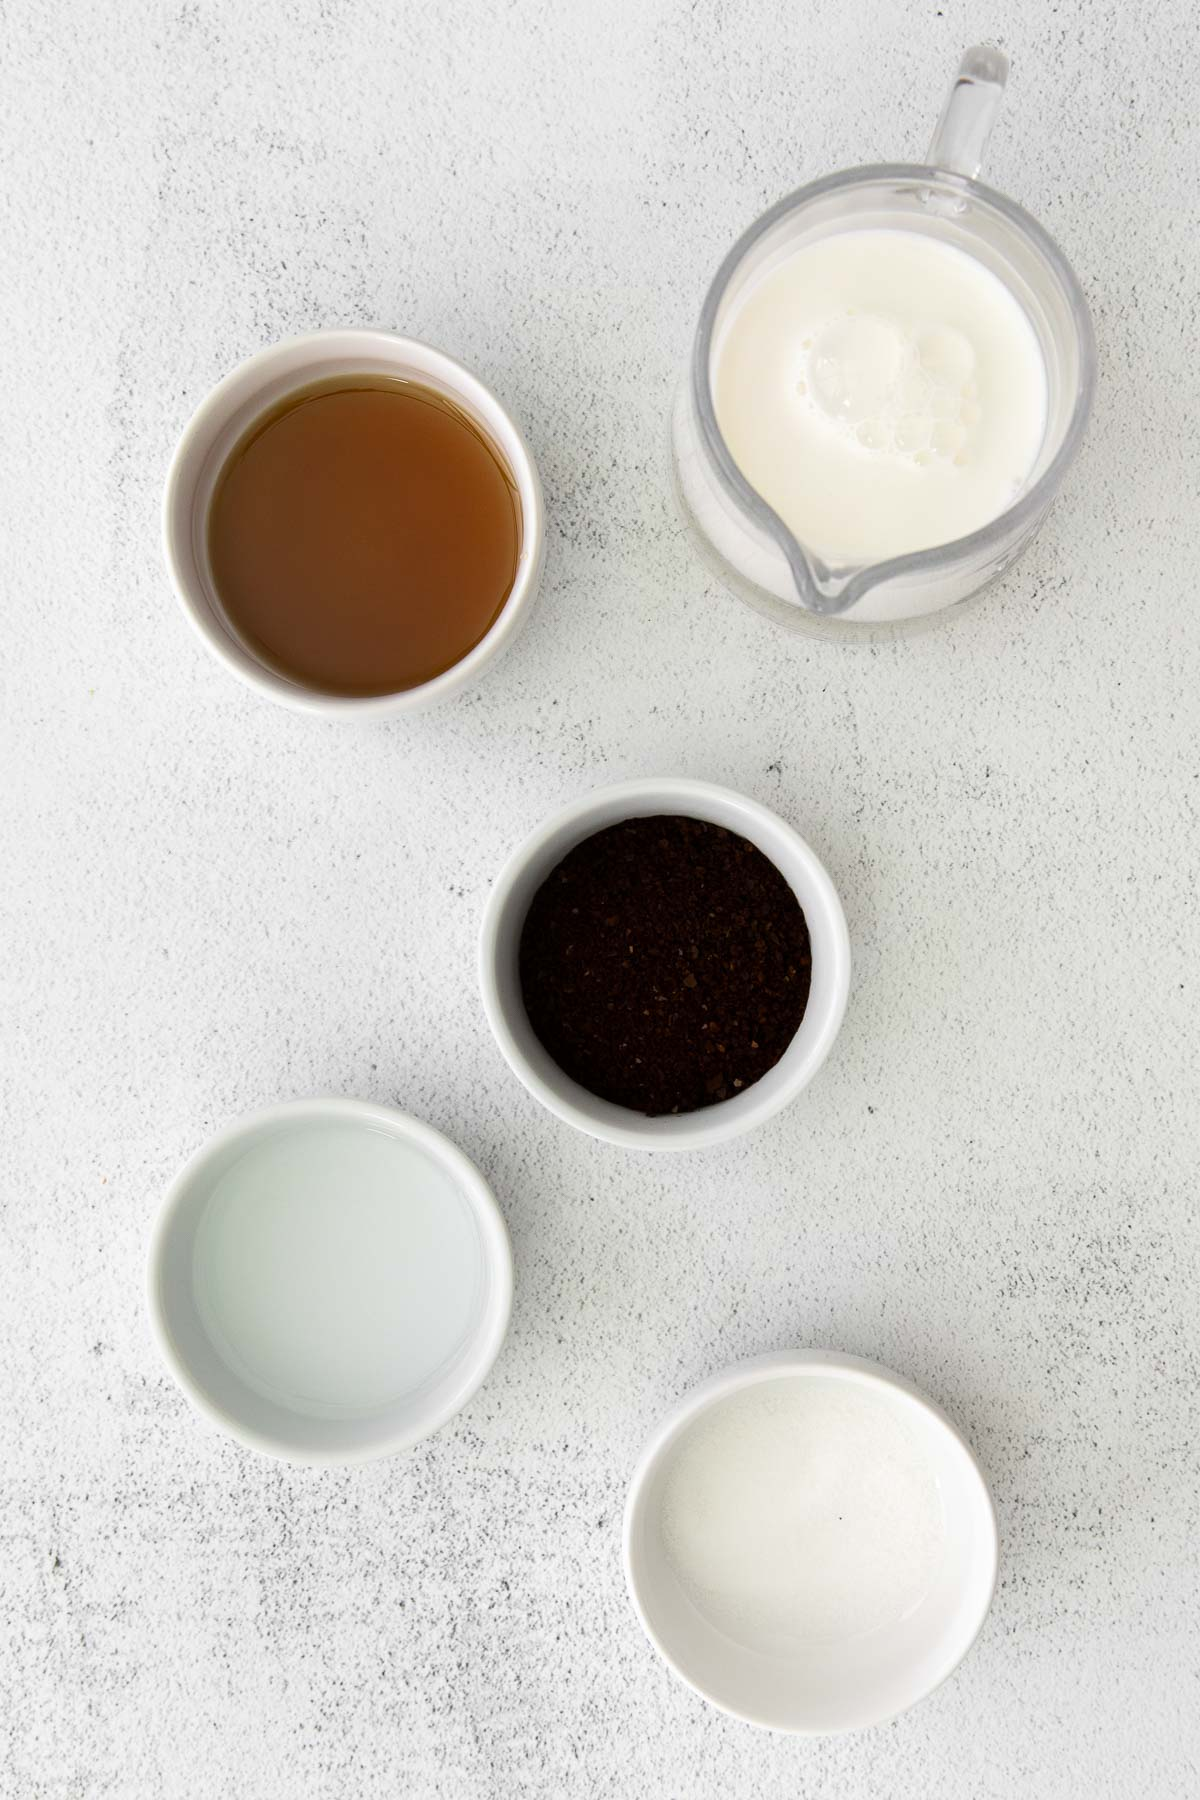 several white bowls with milk, instant coffee, milk, maple syrup for whipped coffee